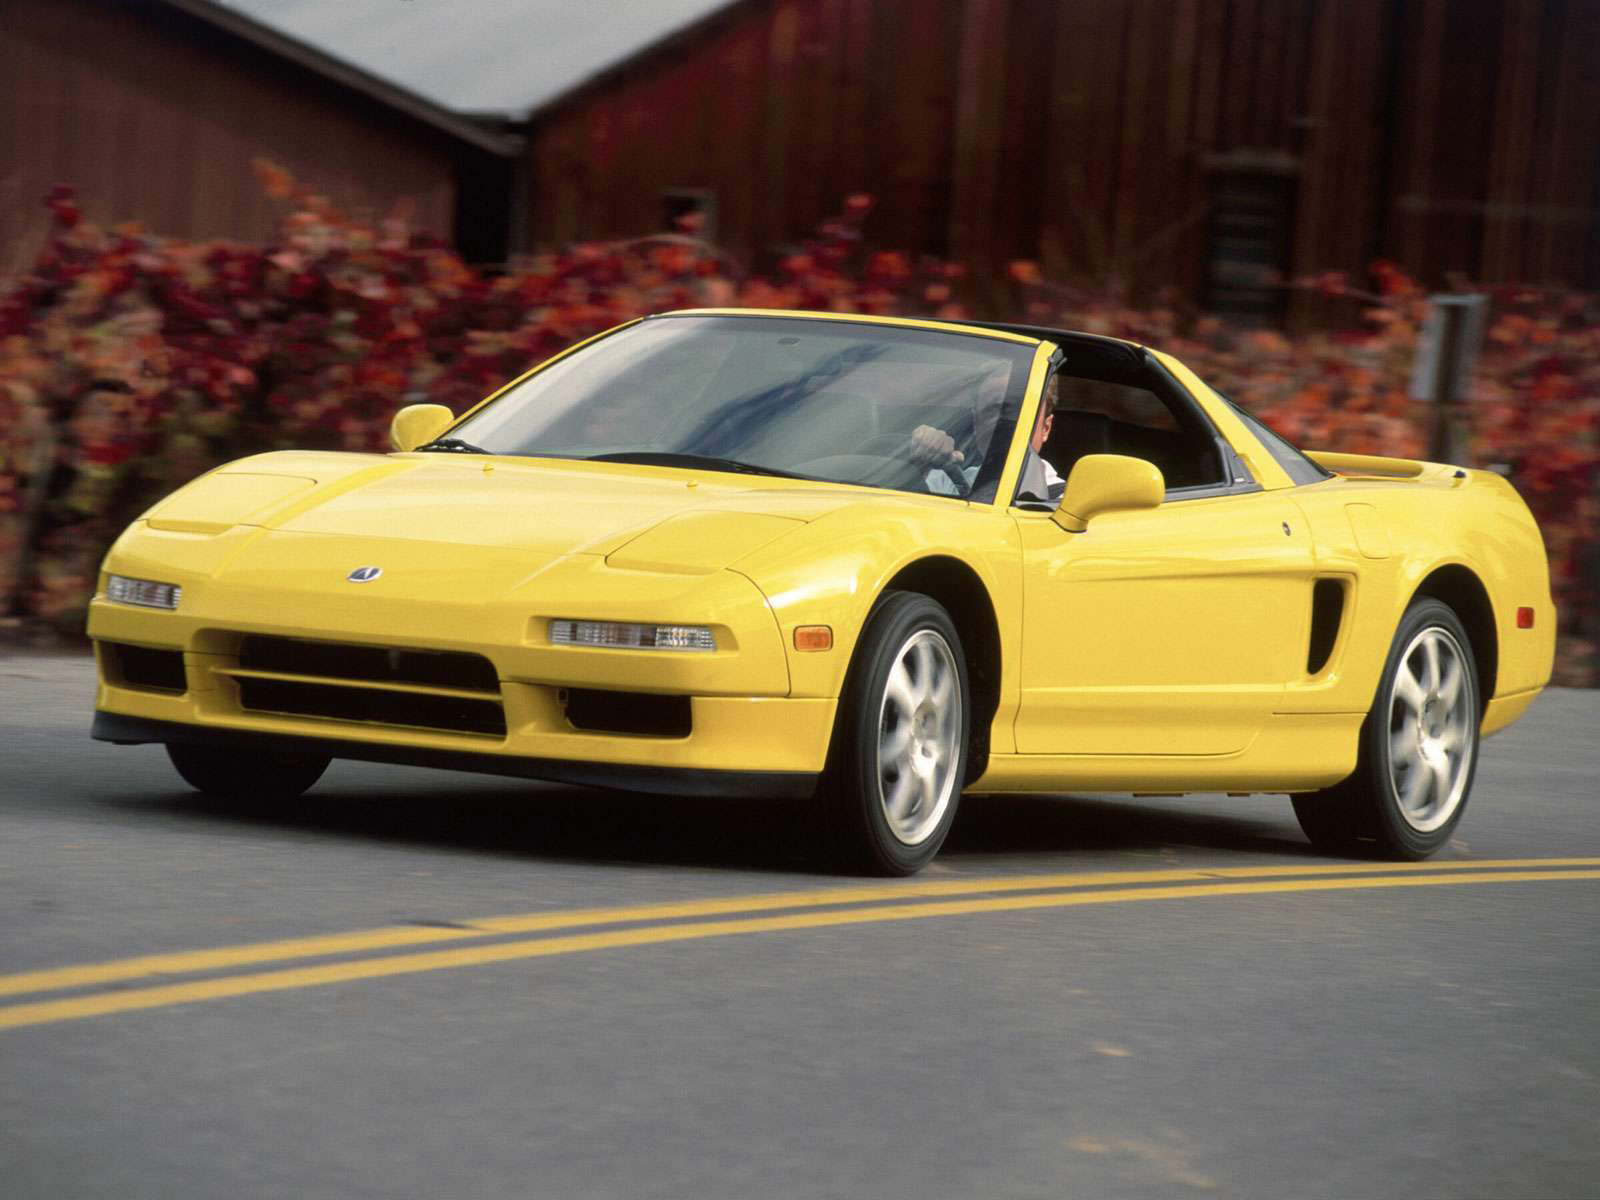 2001 acura nsx t car wallpapers accident lawyers info Acura NSX Seats Acura NSX Wheels